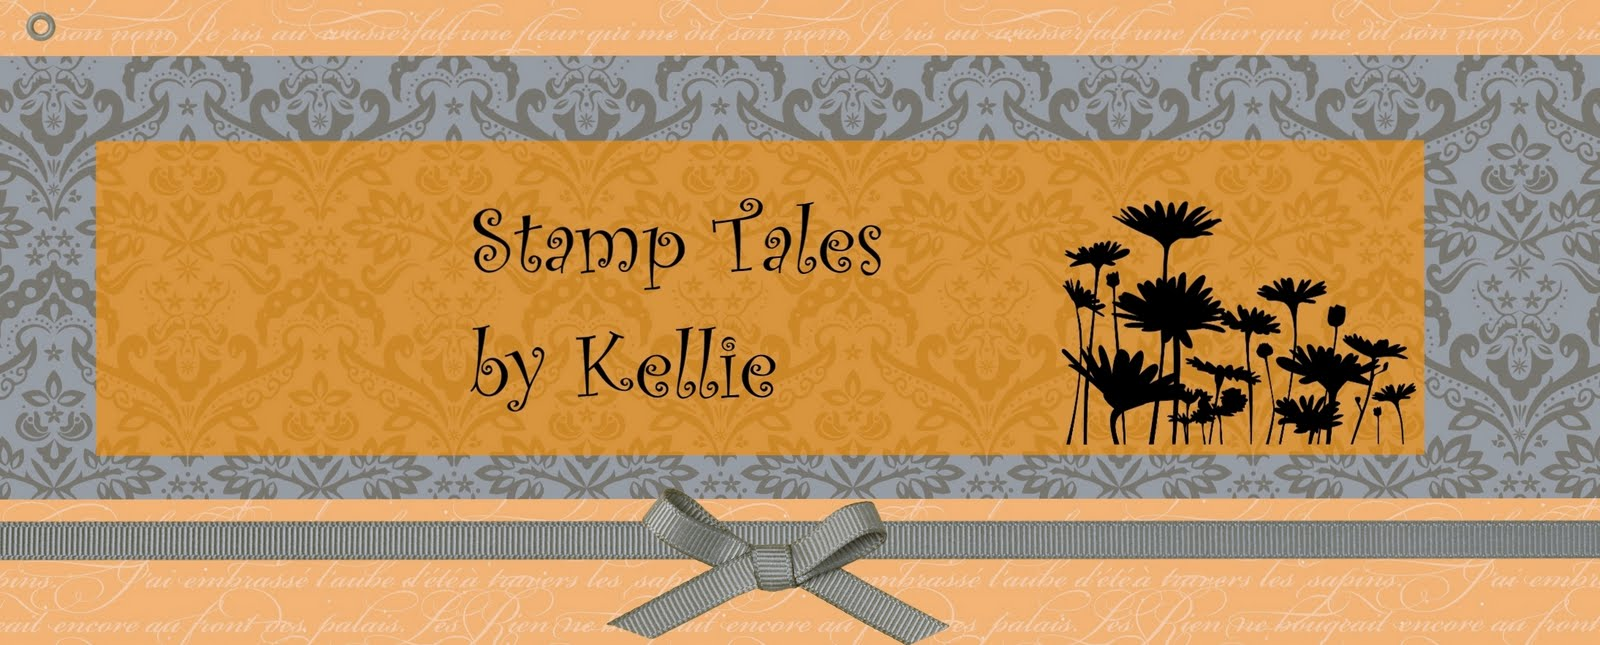 Stamp tales